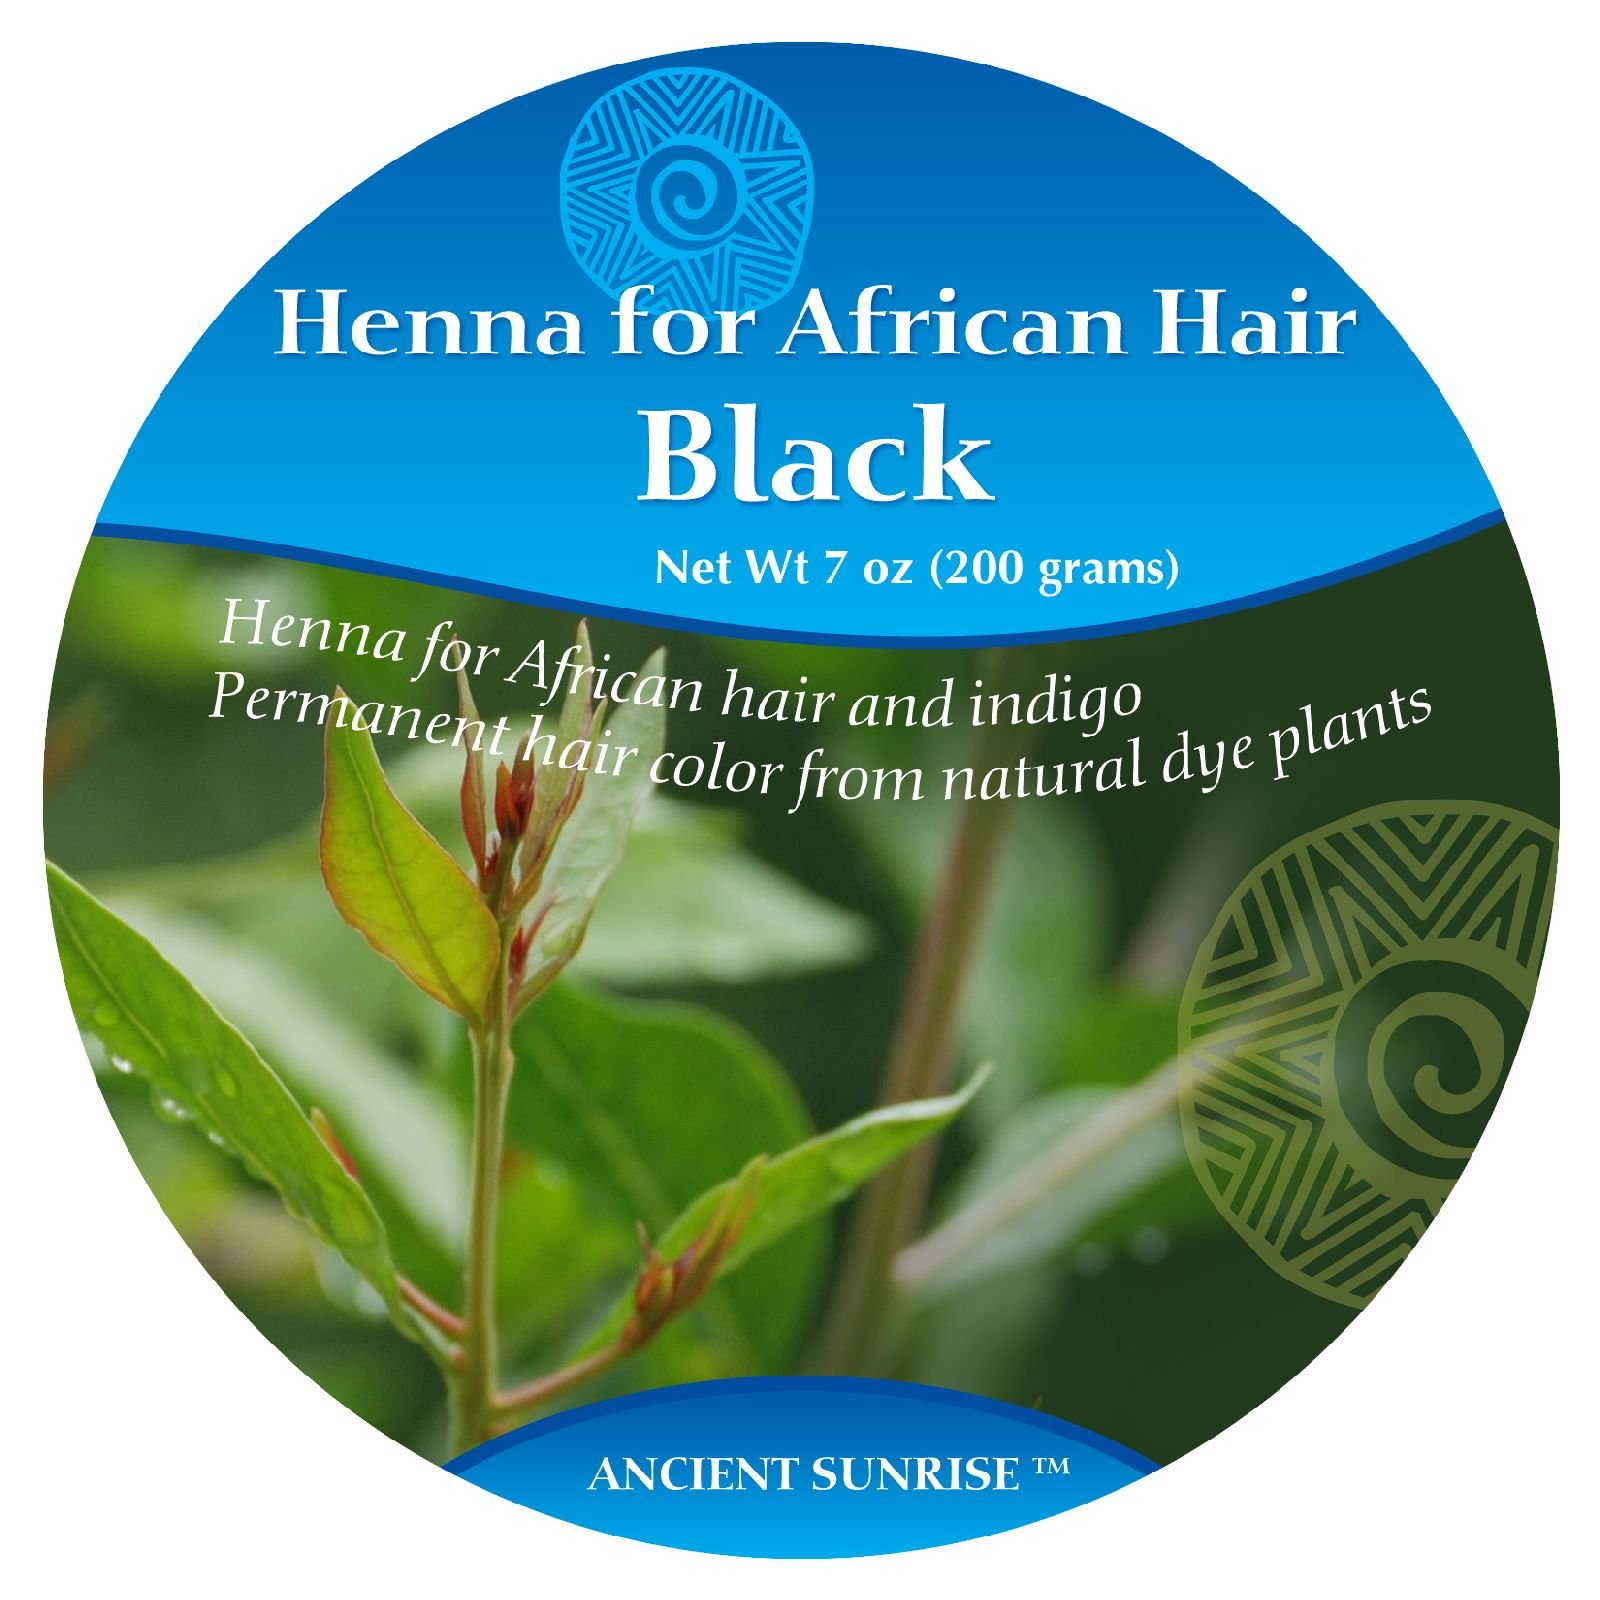 Ancient Sunrise Henna For African Hair Black Kit by Ancient Sunrise